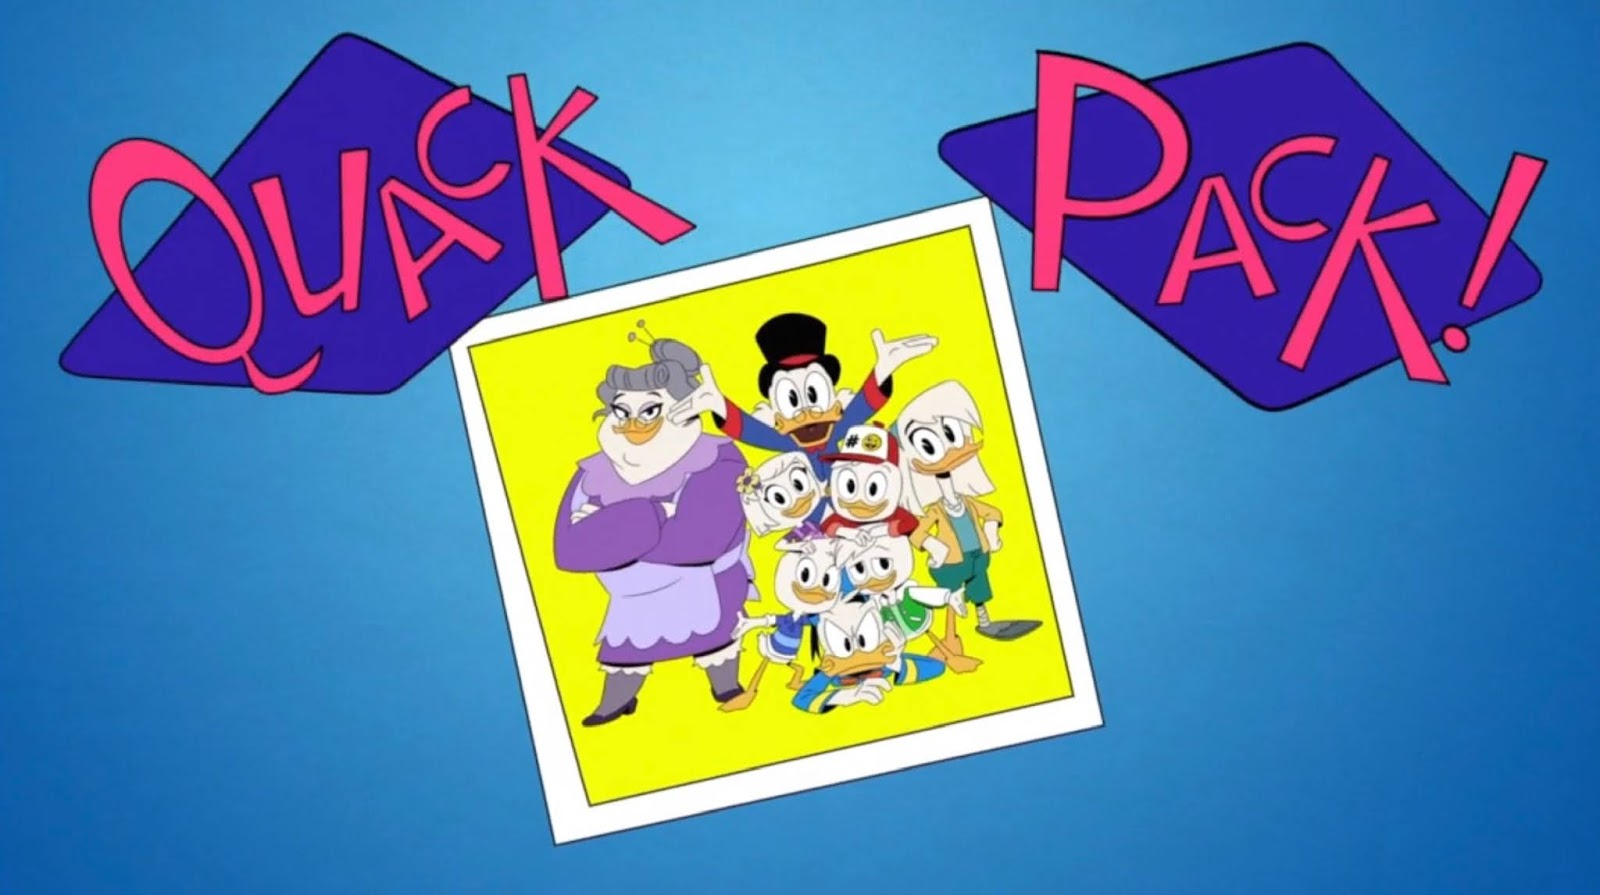 Uk New Ducktales Episode Quack Pack Premieres Today On Disney Xd